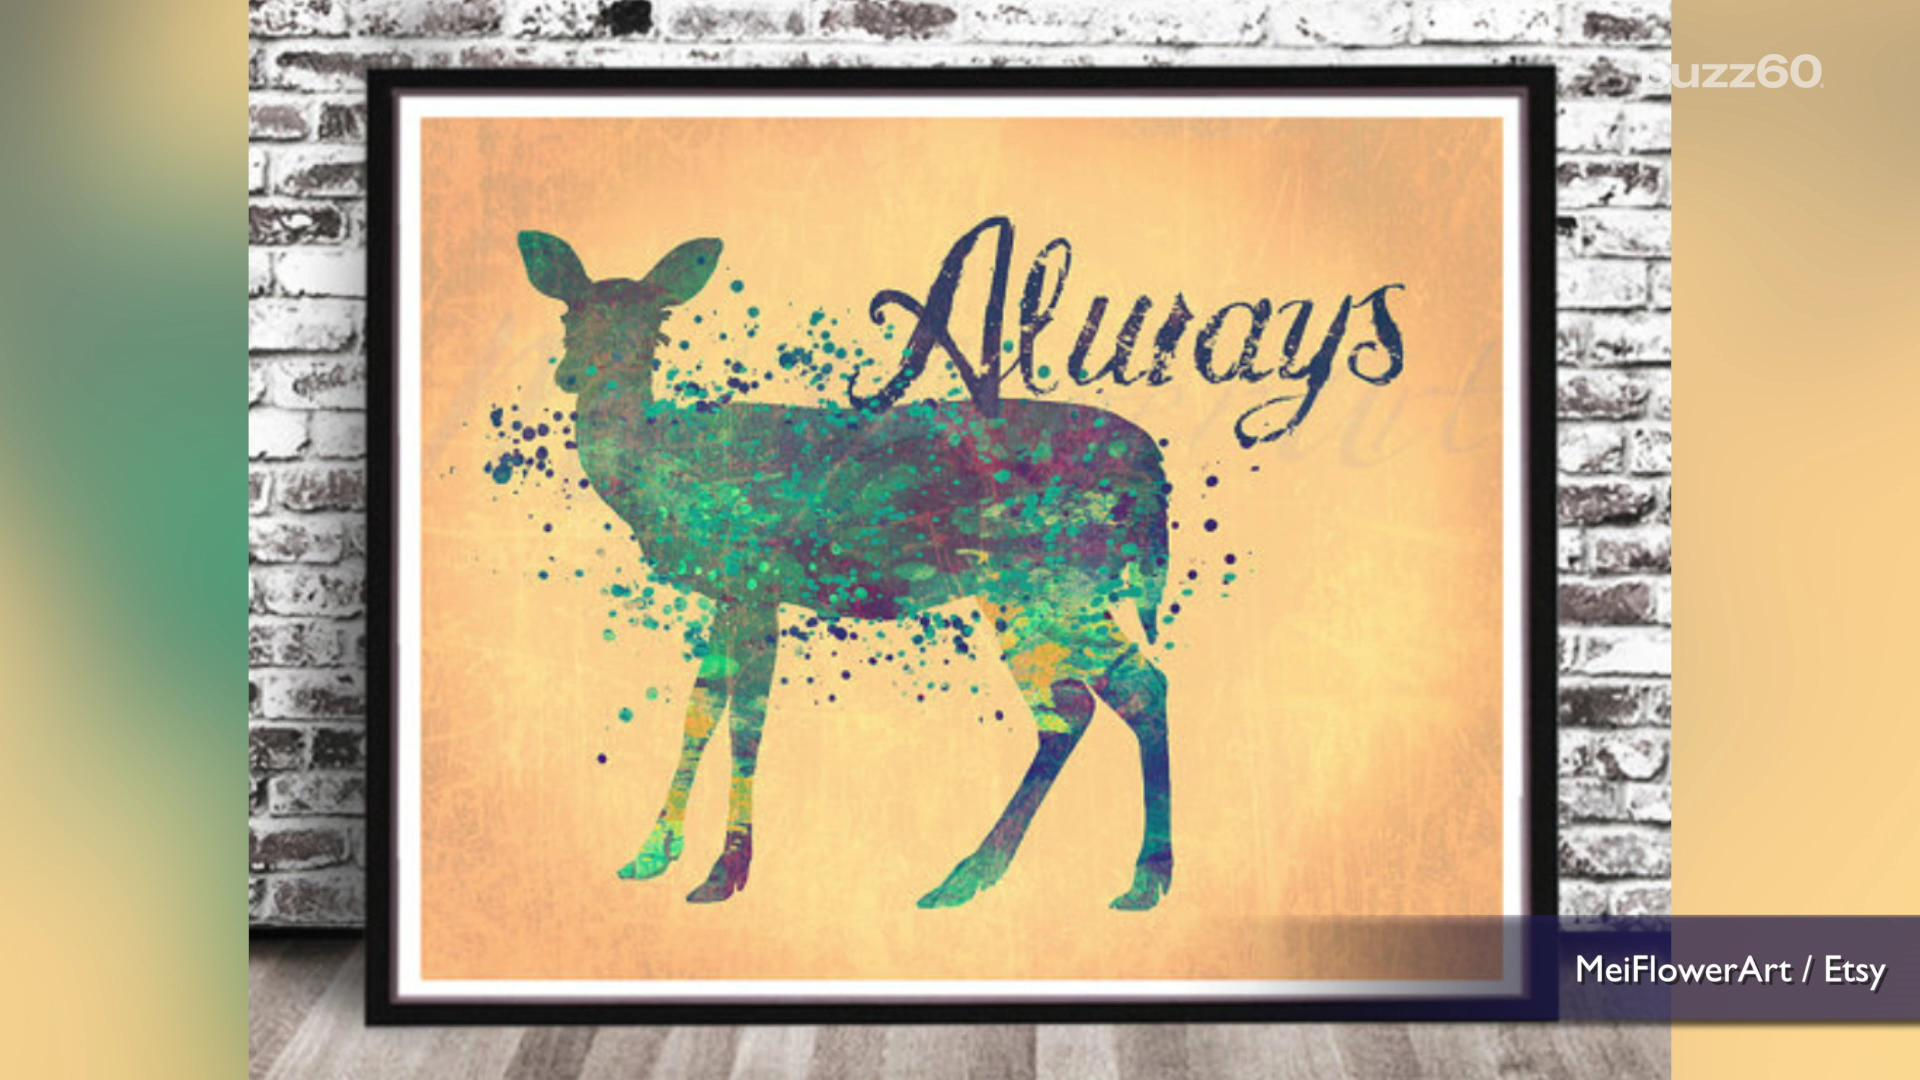 Harry Potter inspired home decor from Etsy that even Muggles will love